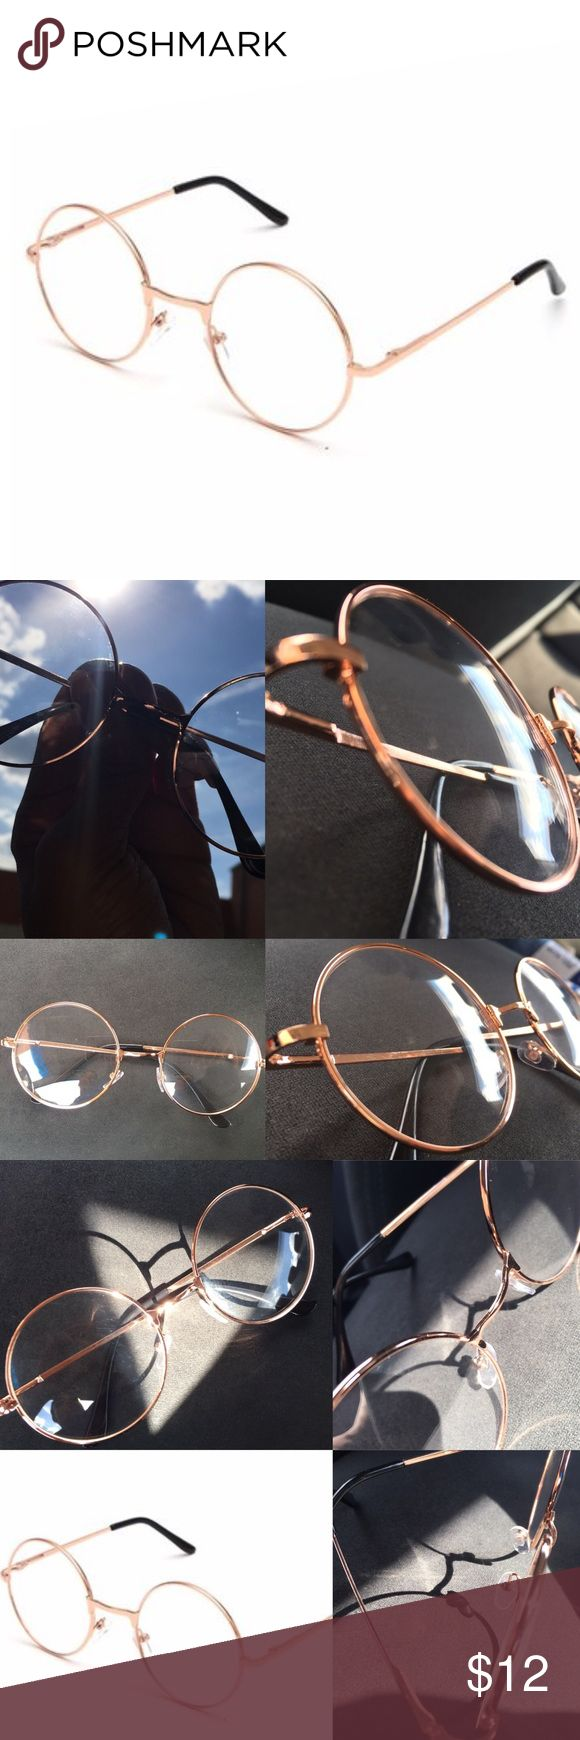 ✨Rose Gold Round Frame Glasses✨ Must have fashion glasses! No prescription. Rose gold tone. Never worn! Clear lenses. Black cover on ends of legs. Great quality and condition! Nasty Gal Accessories Glasses